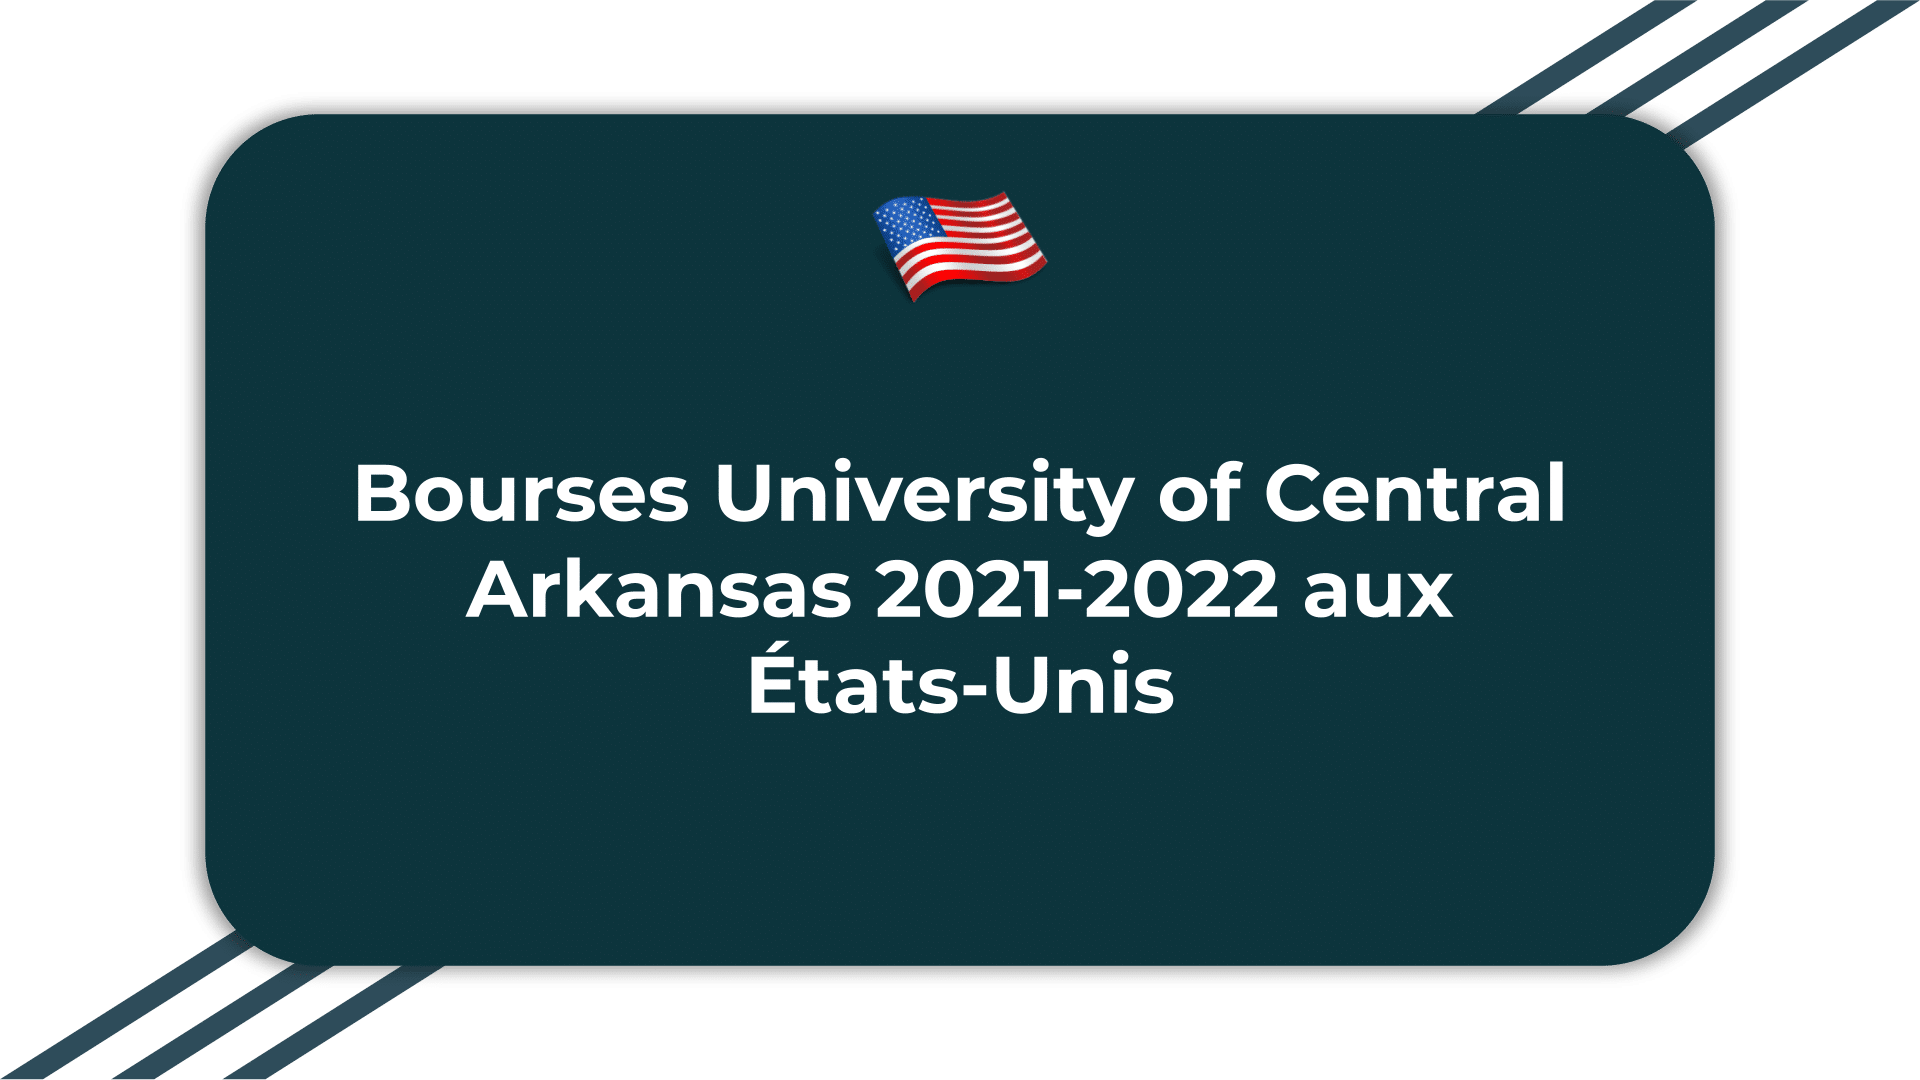 Bourses University of Central Arkansas